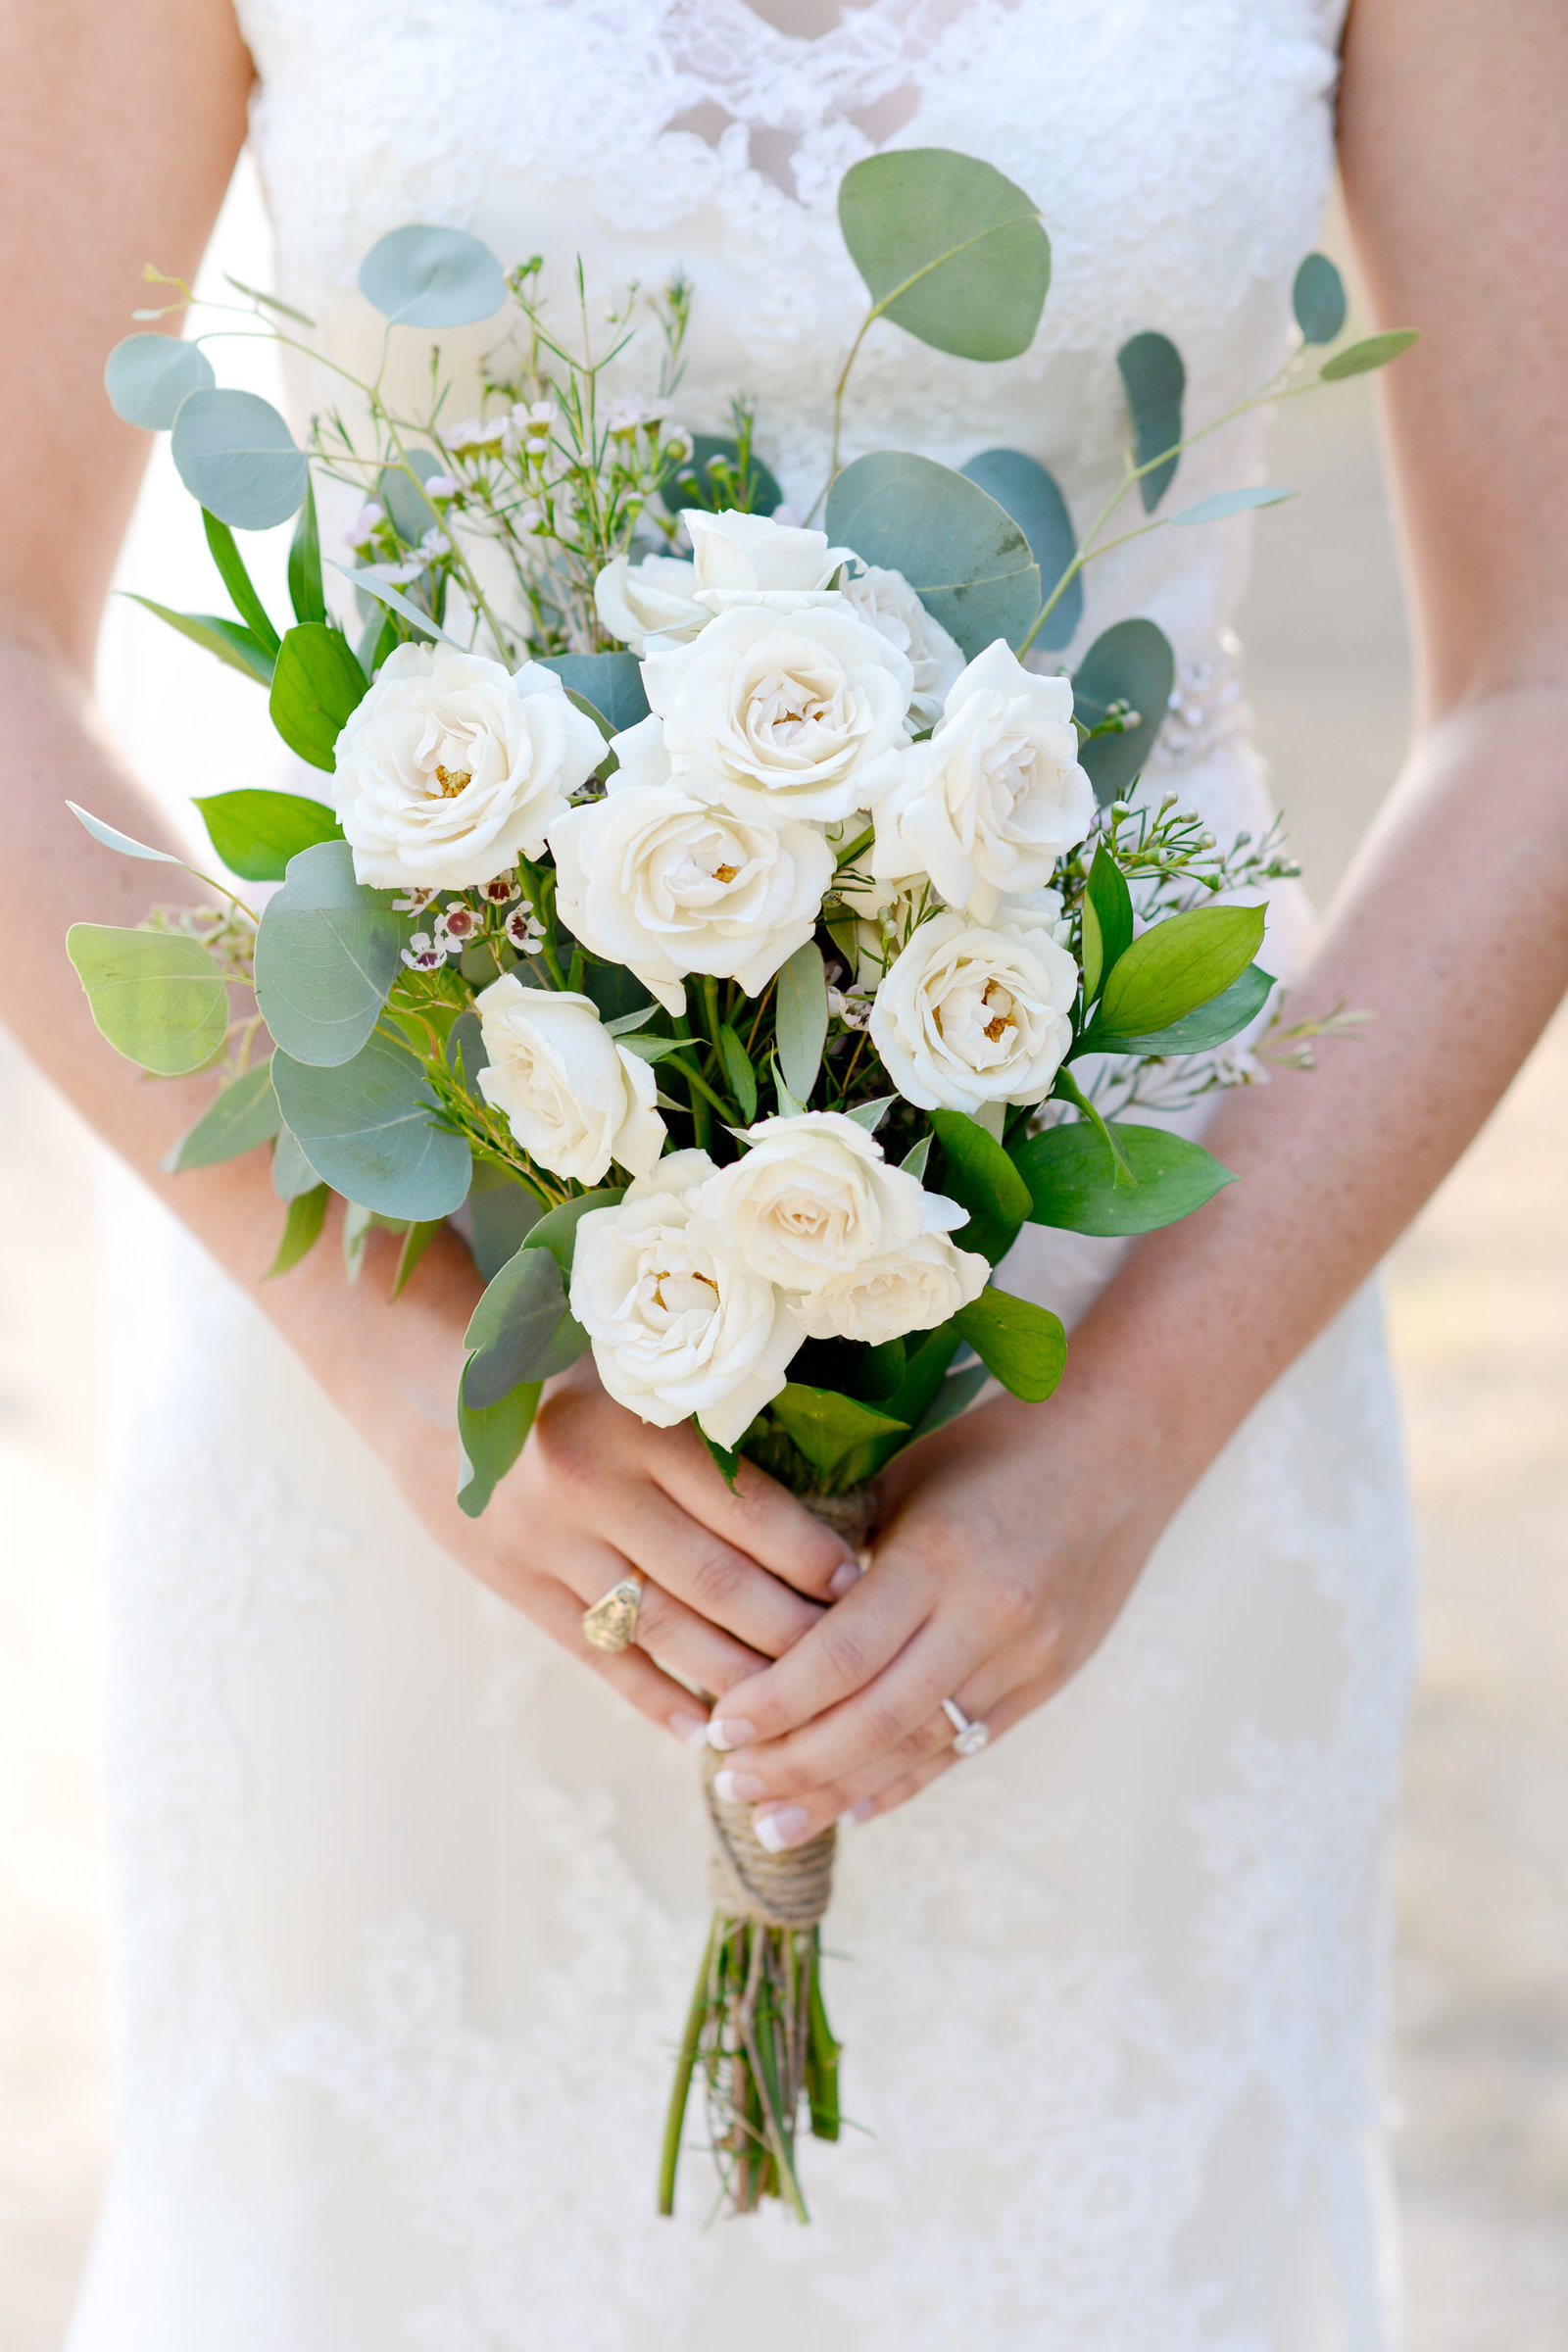 What to take to your bridal portraits: a wedding bouquet